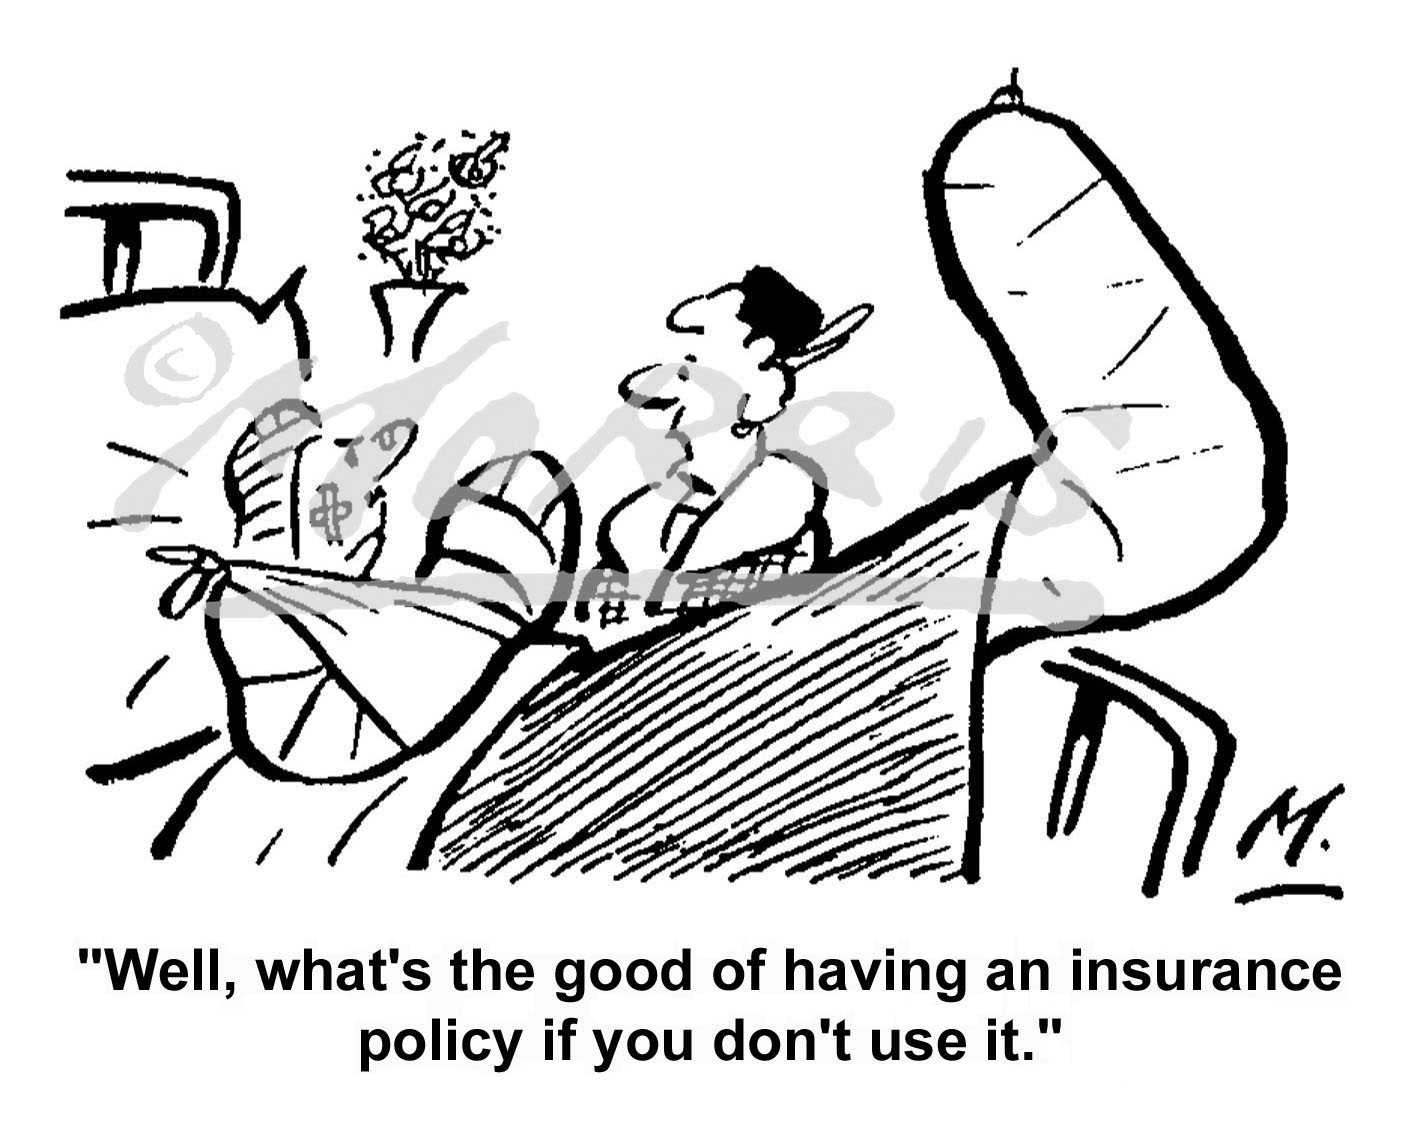 Insurance policy cartoon Ref: 0322bw